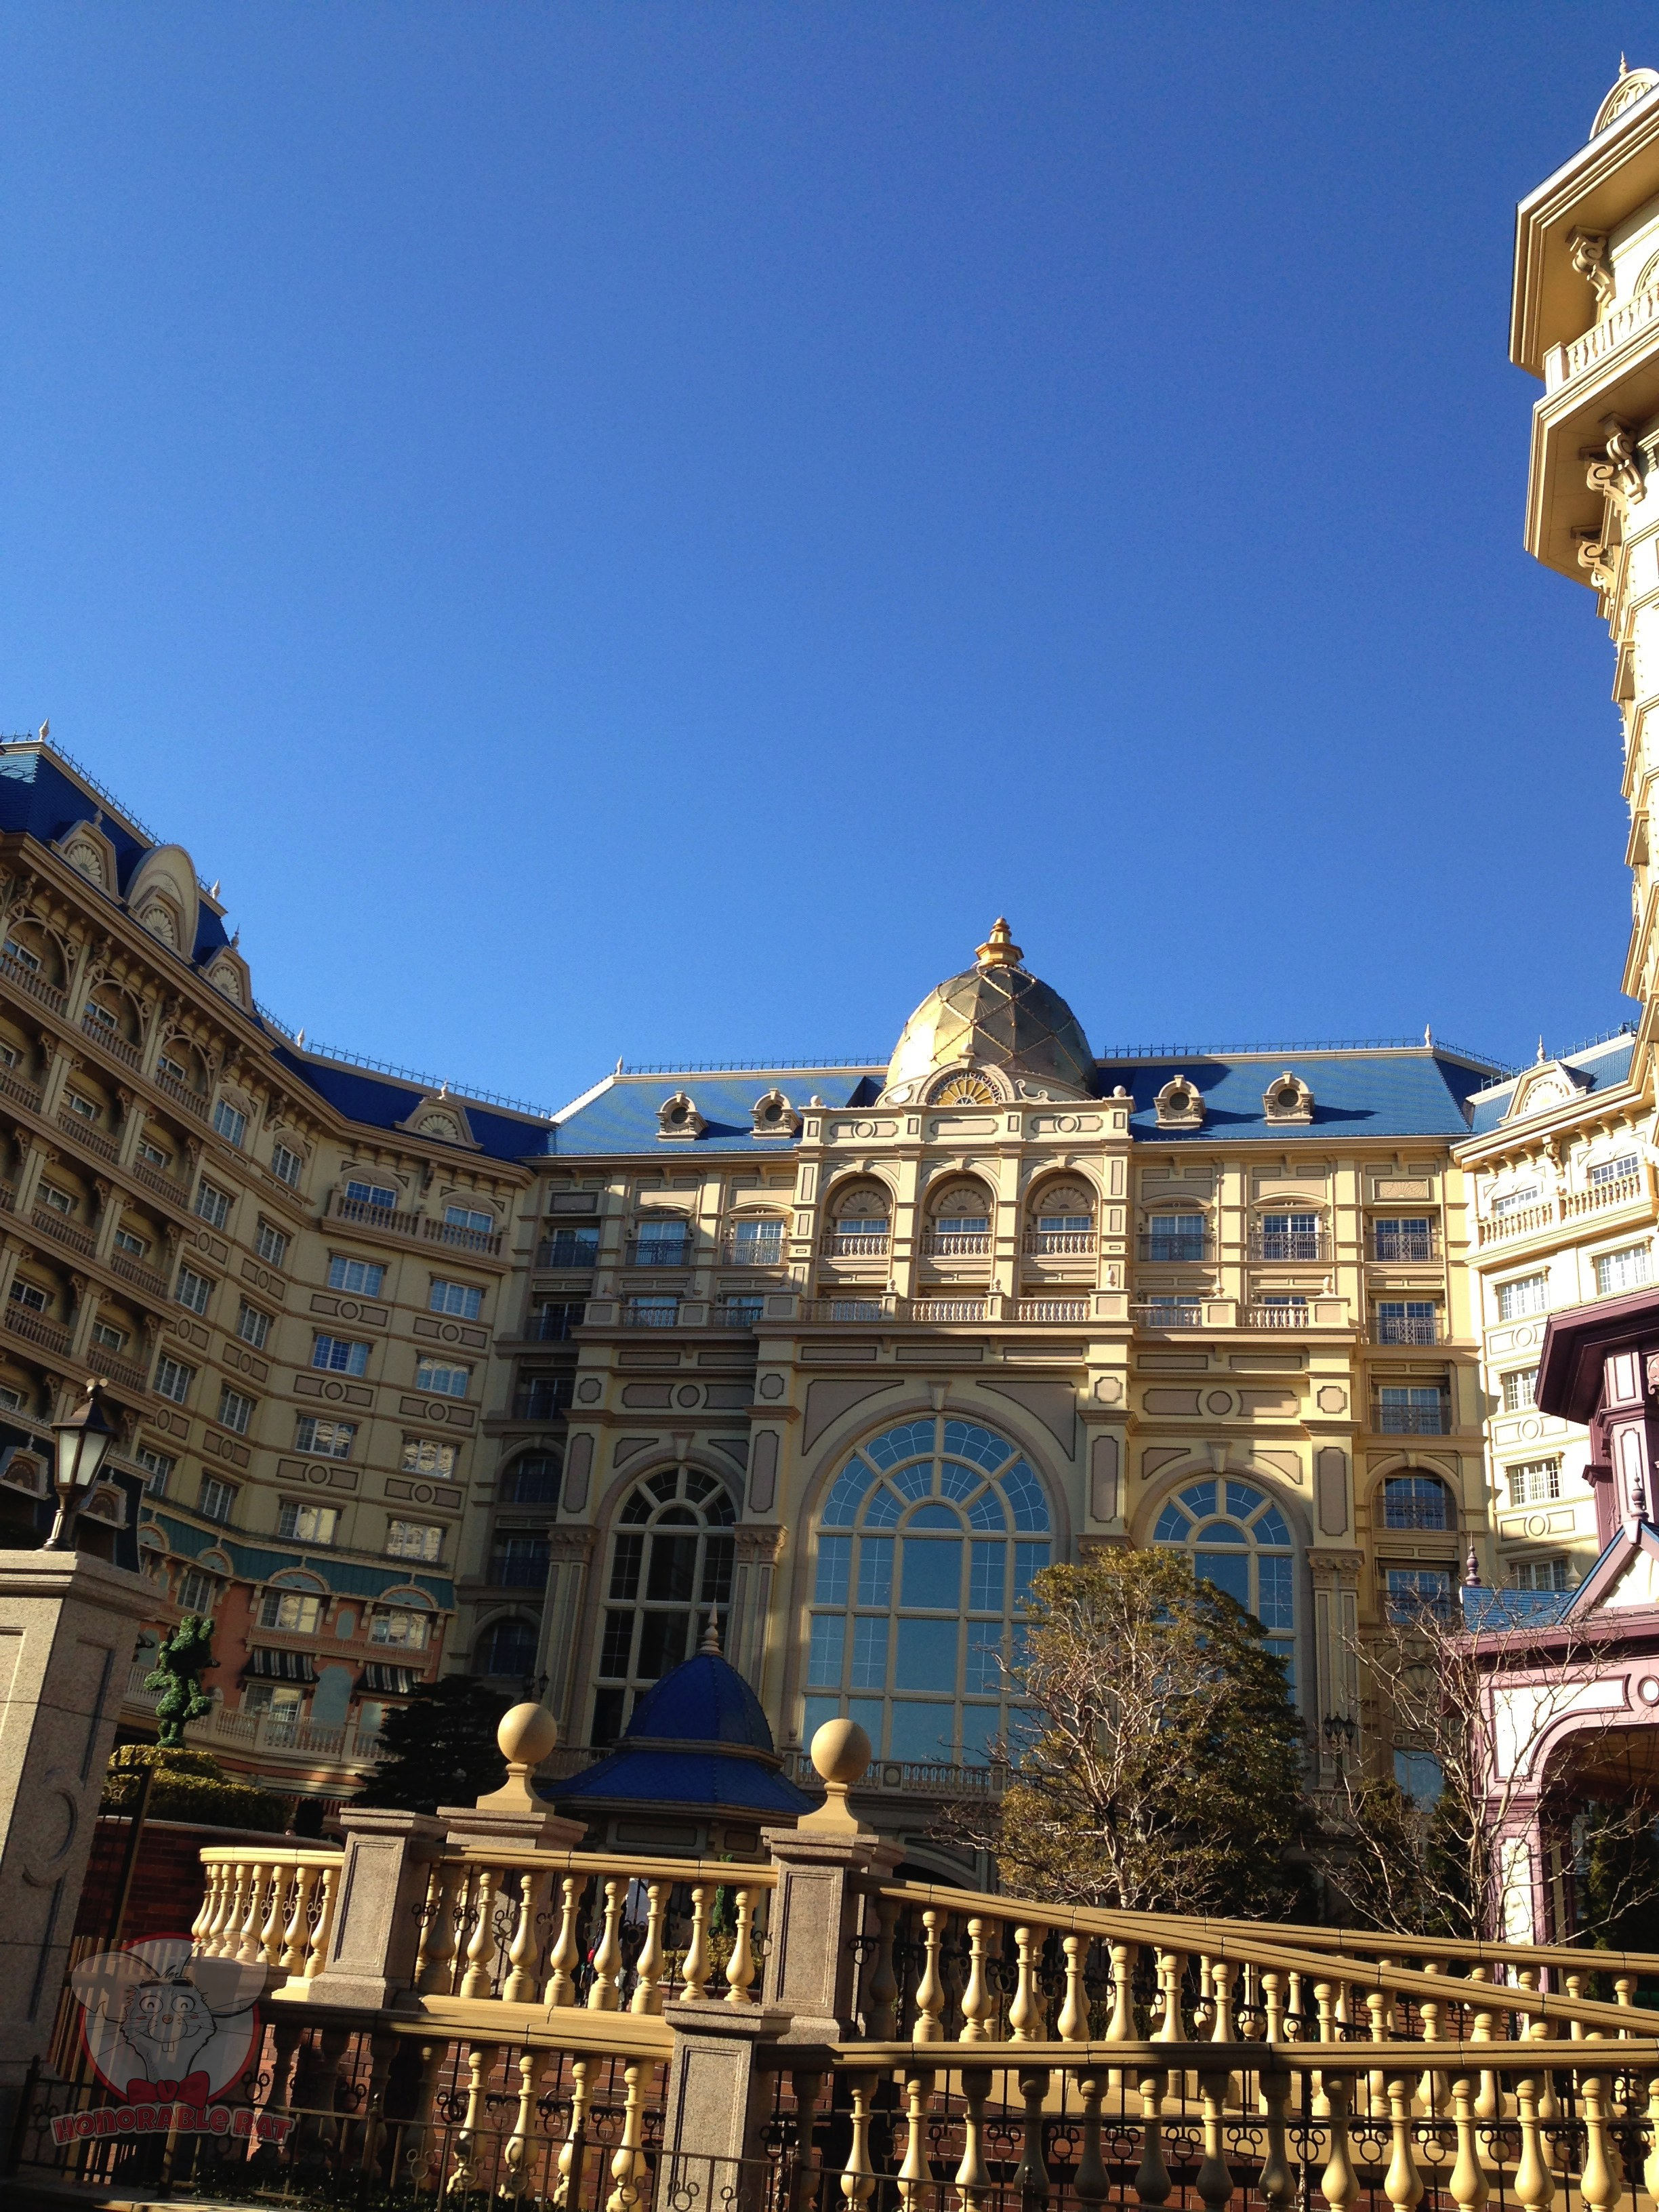 Tokyo Disneyland Hotel from the front